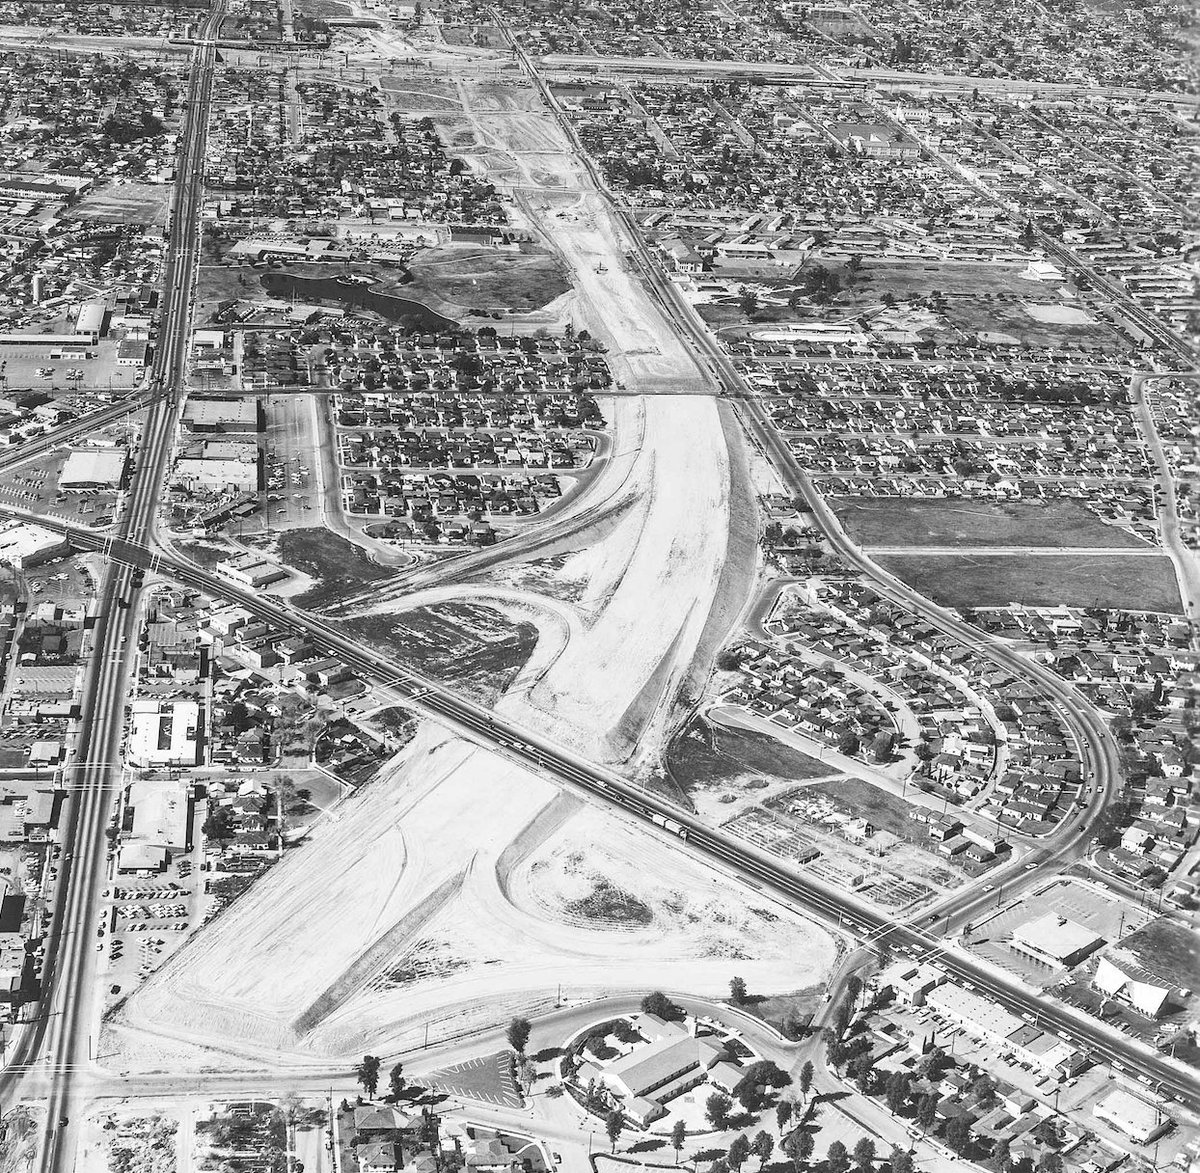 SPECIAL REPORT: Constructed inequality: The lasting repercussions of America's highway system.  https://t.co/zlYAAdVLXE  (1/10) #NBCNewsThreads https://t.co/U81dxaCnzf